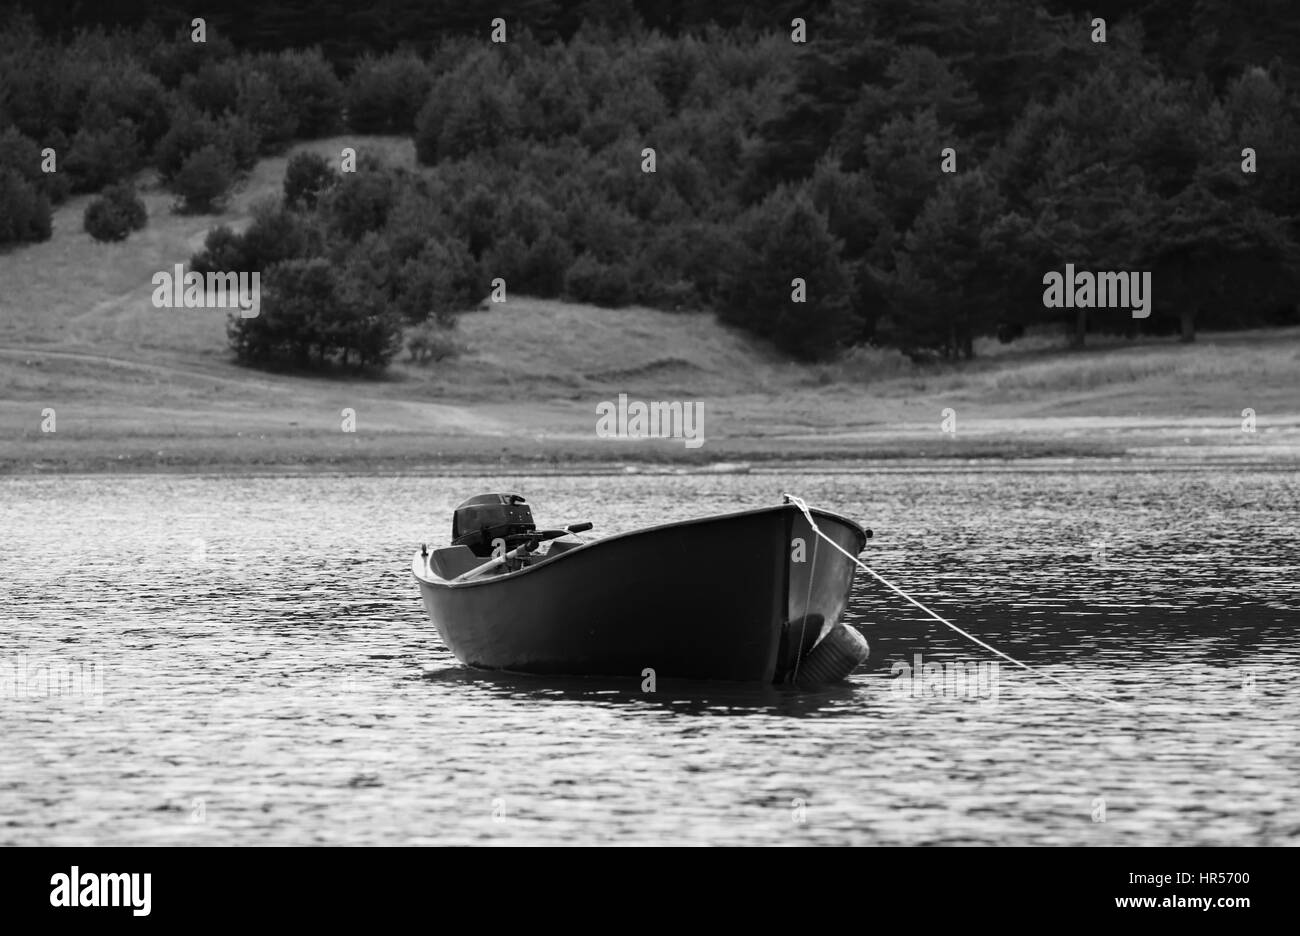 high mountain bulgarian lake with fishing boat in foreground, black and white boat background - Stock Image